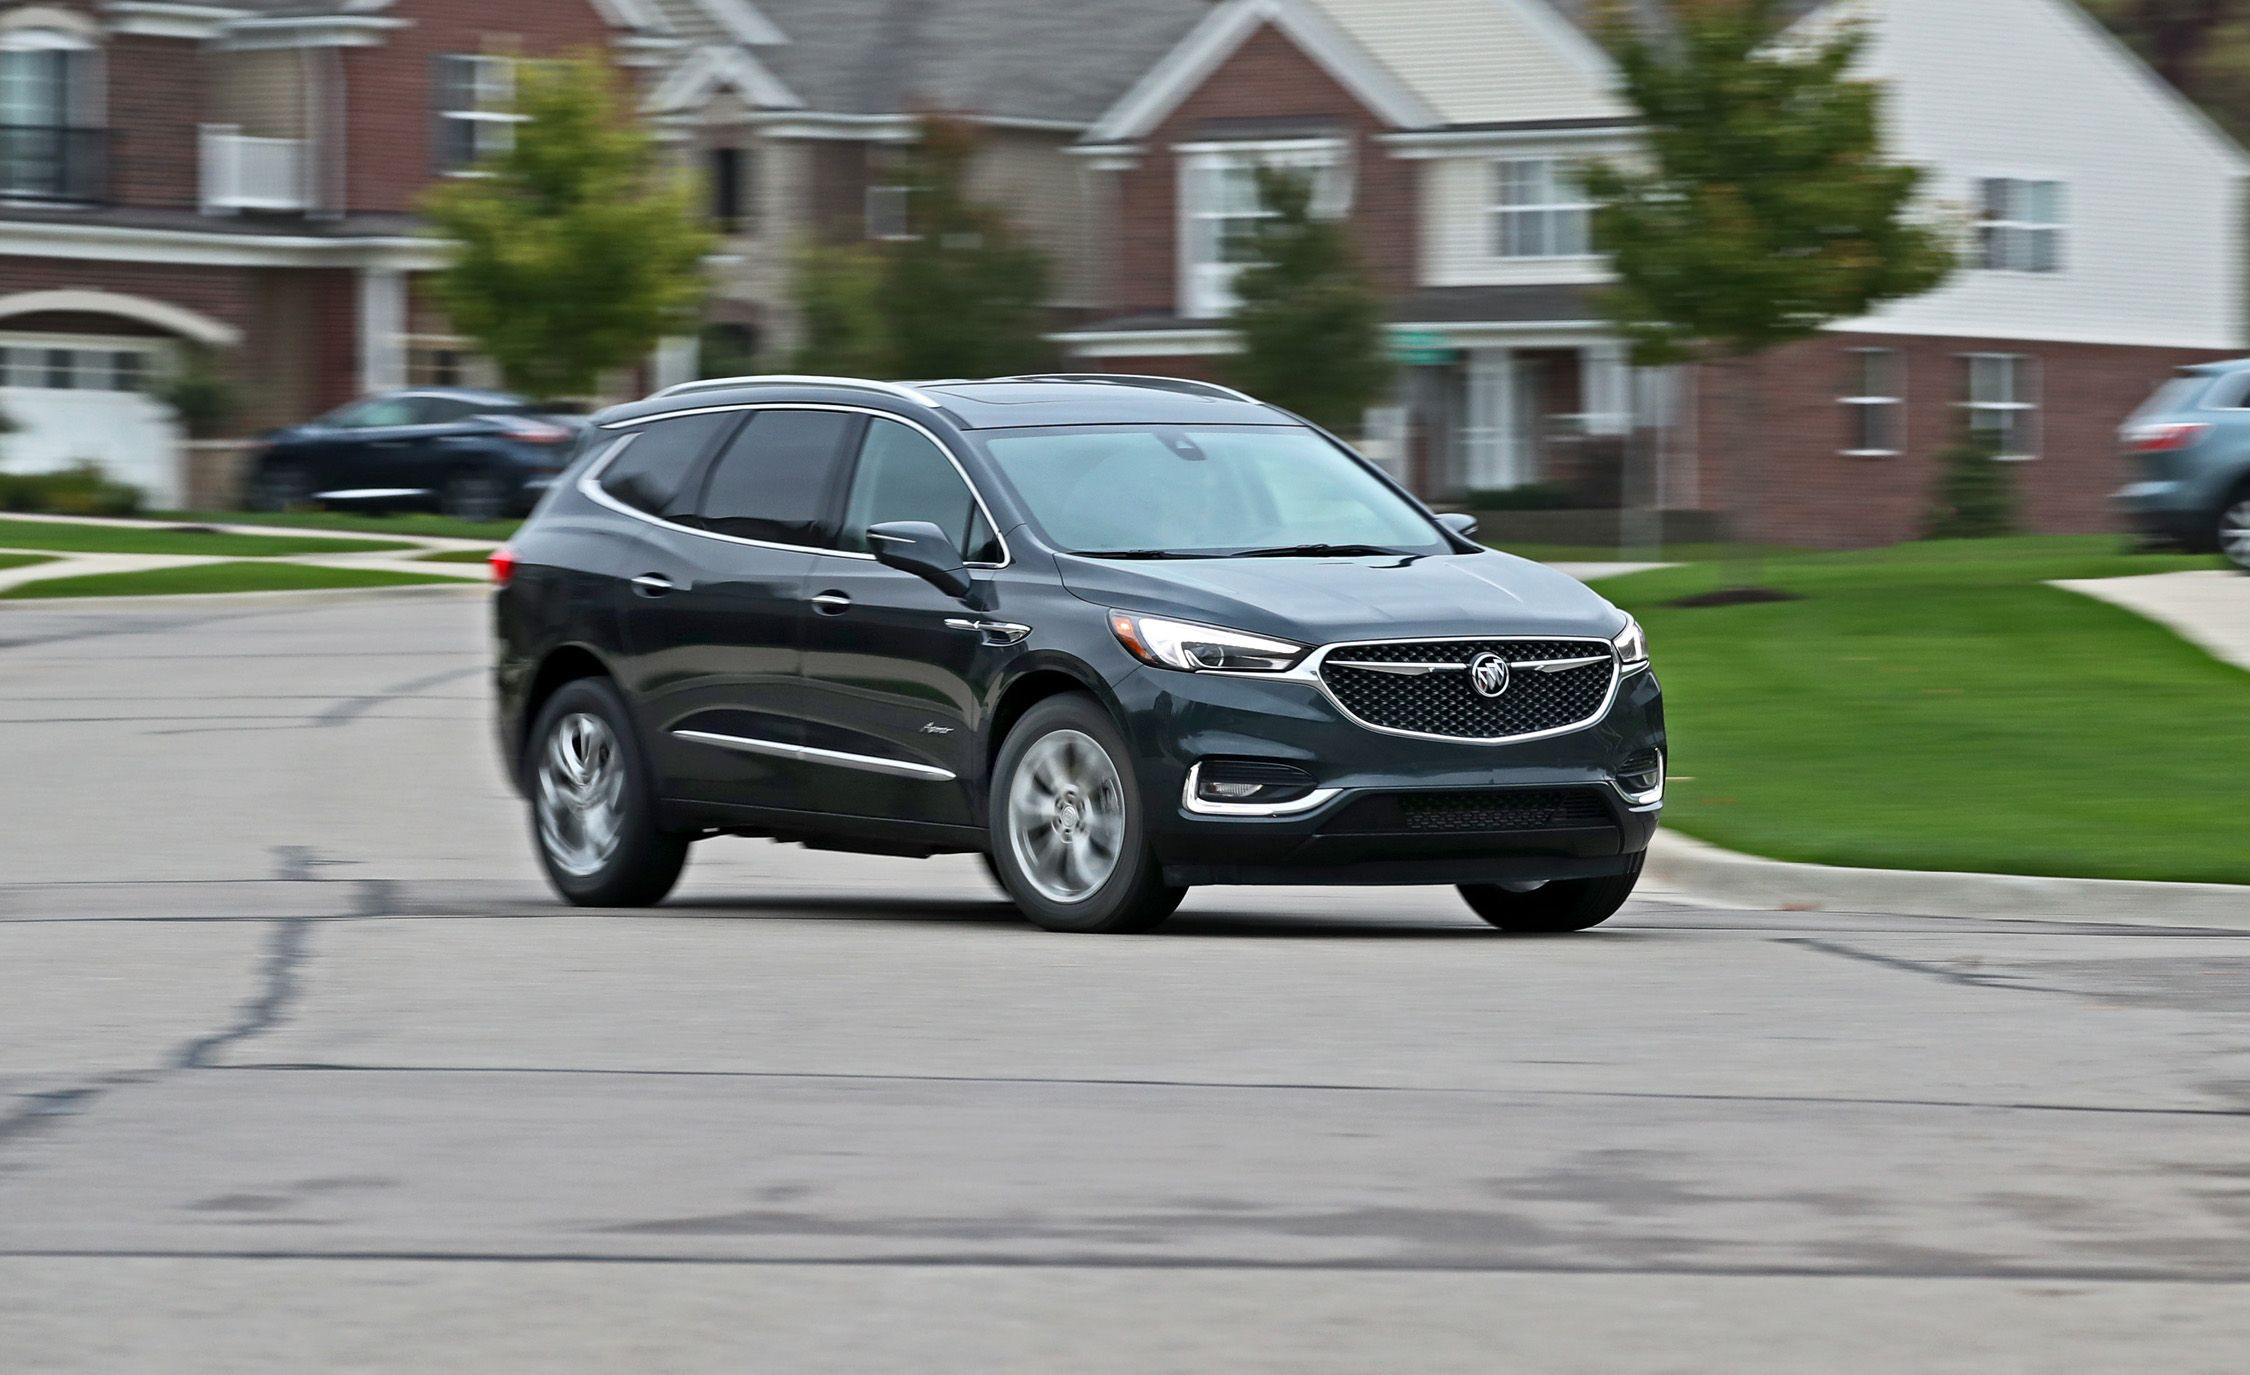 2018 Buick Enclave AWD